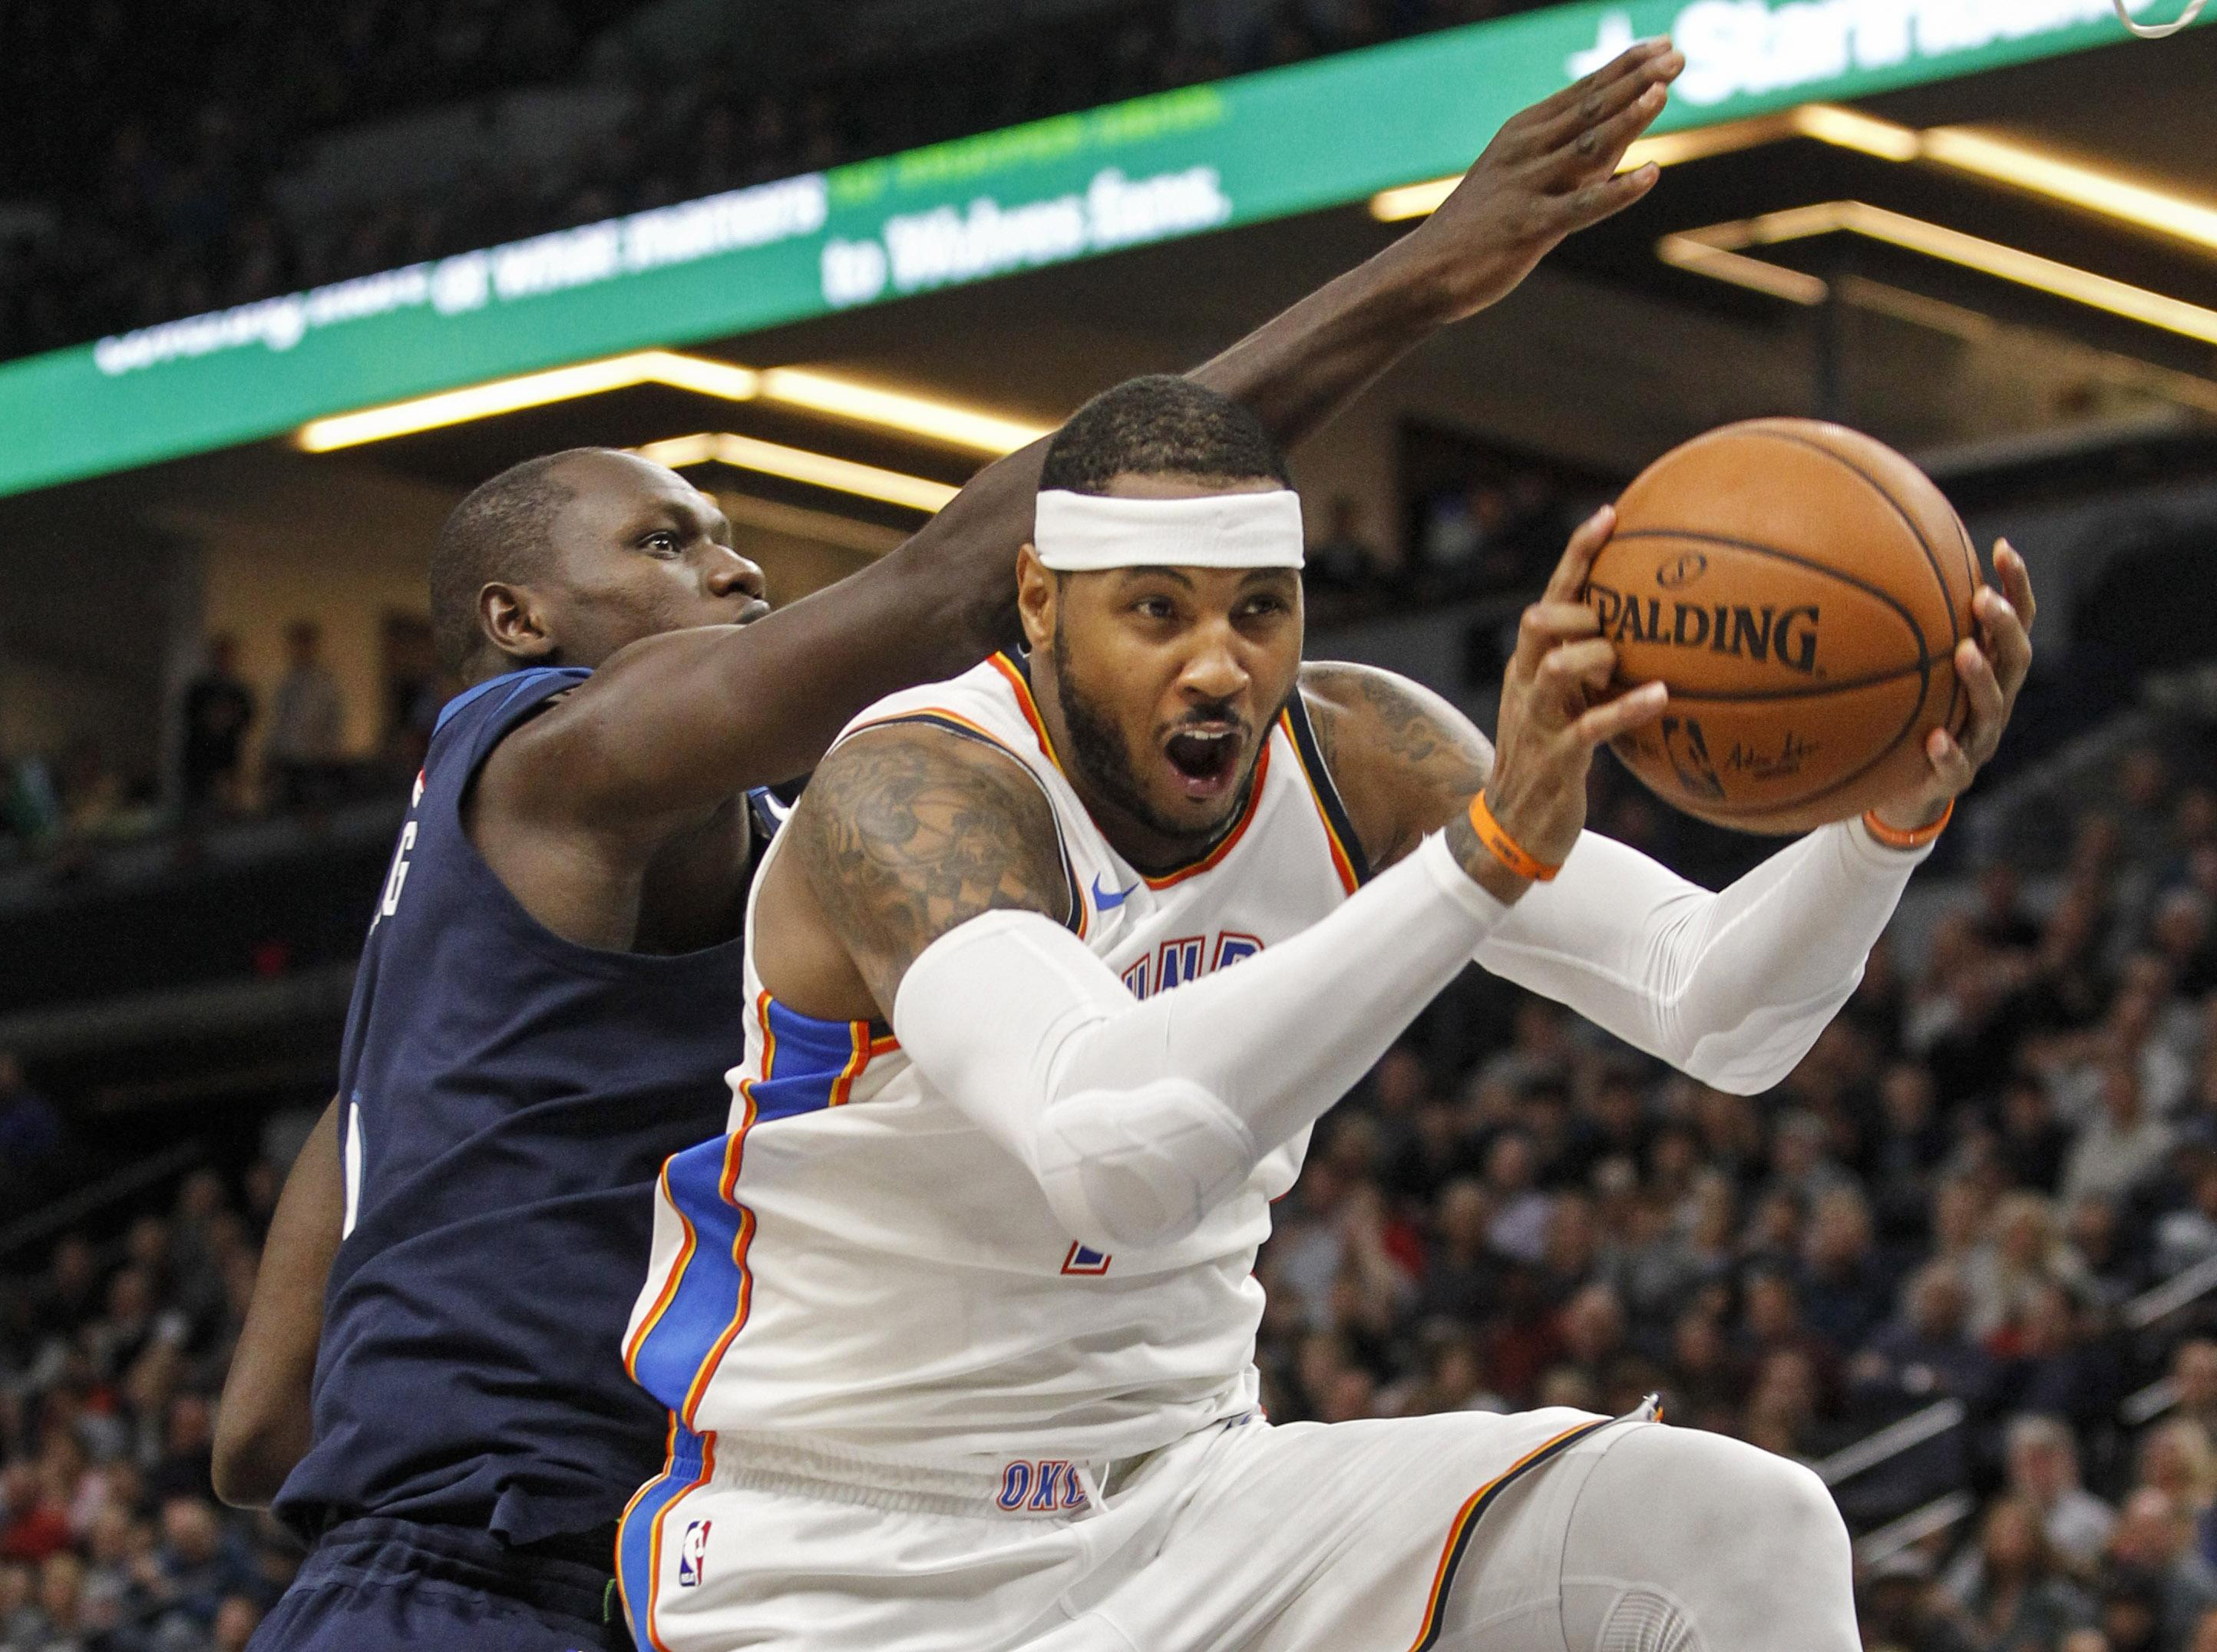 Carmelo Anthony moved to the Houston Rockets - the team who almost eliminated the Warriors in the play-offs last season